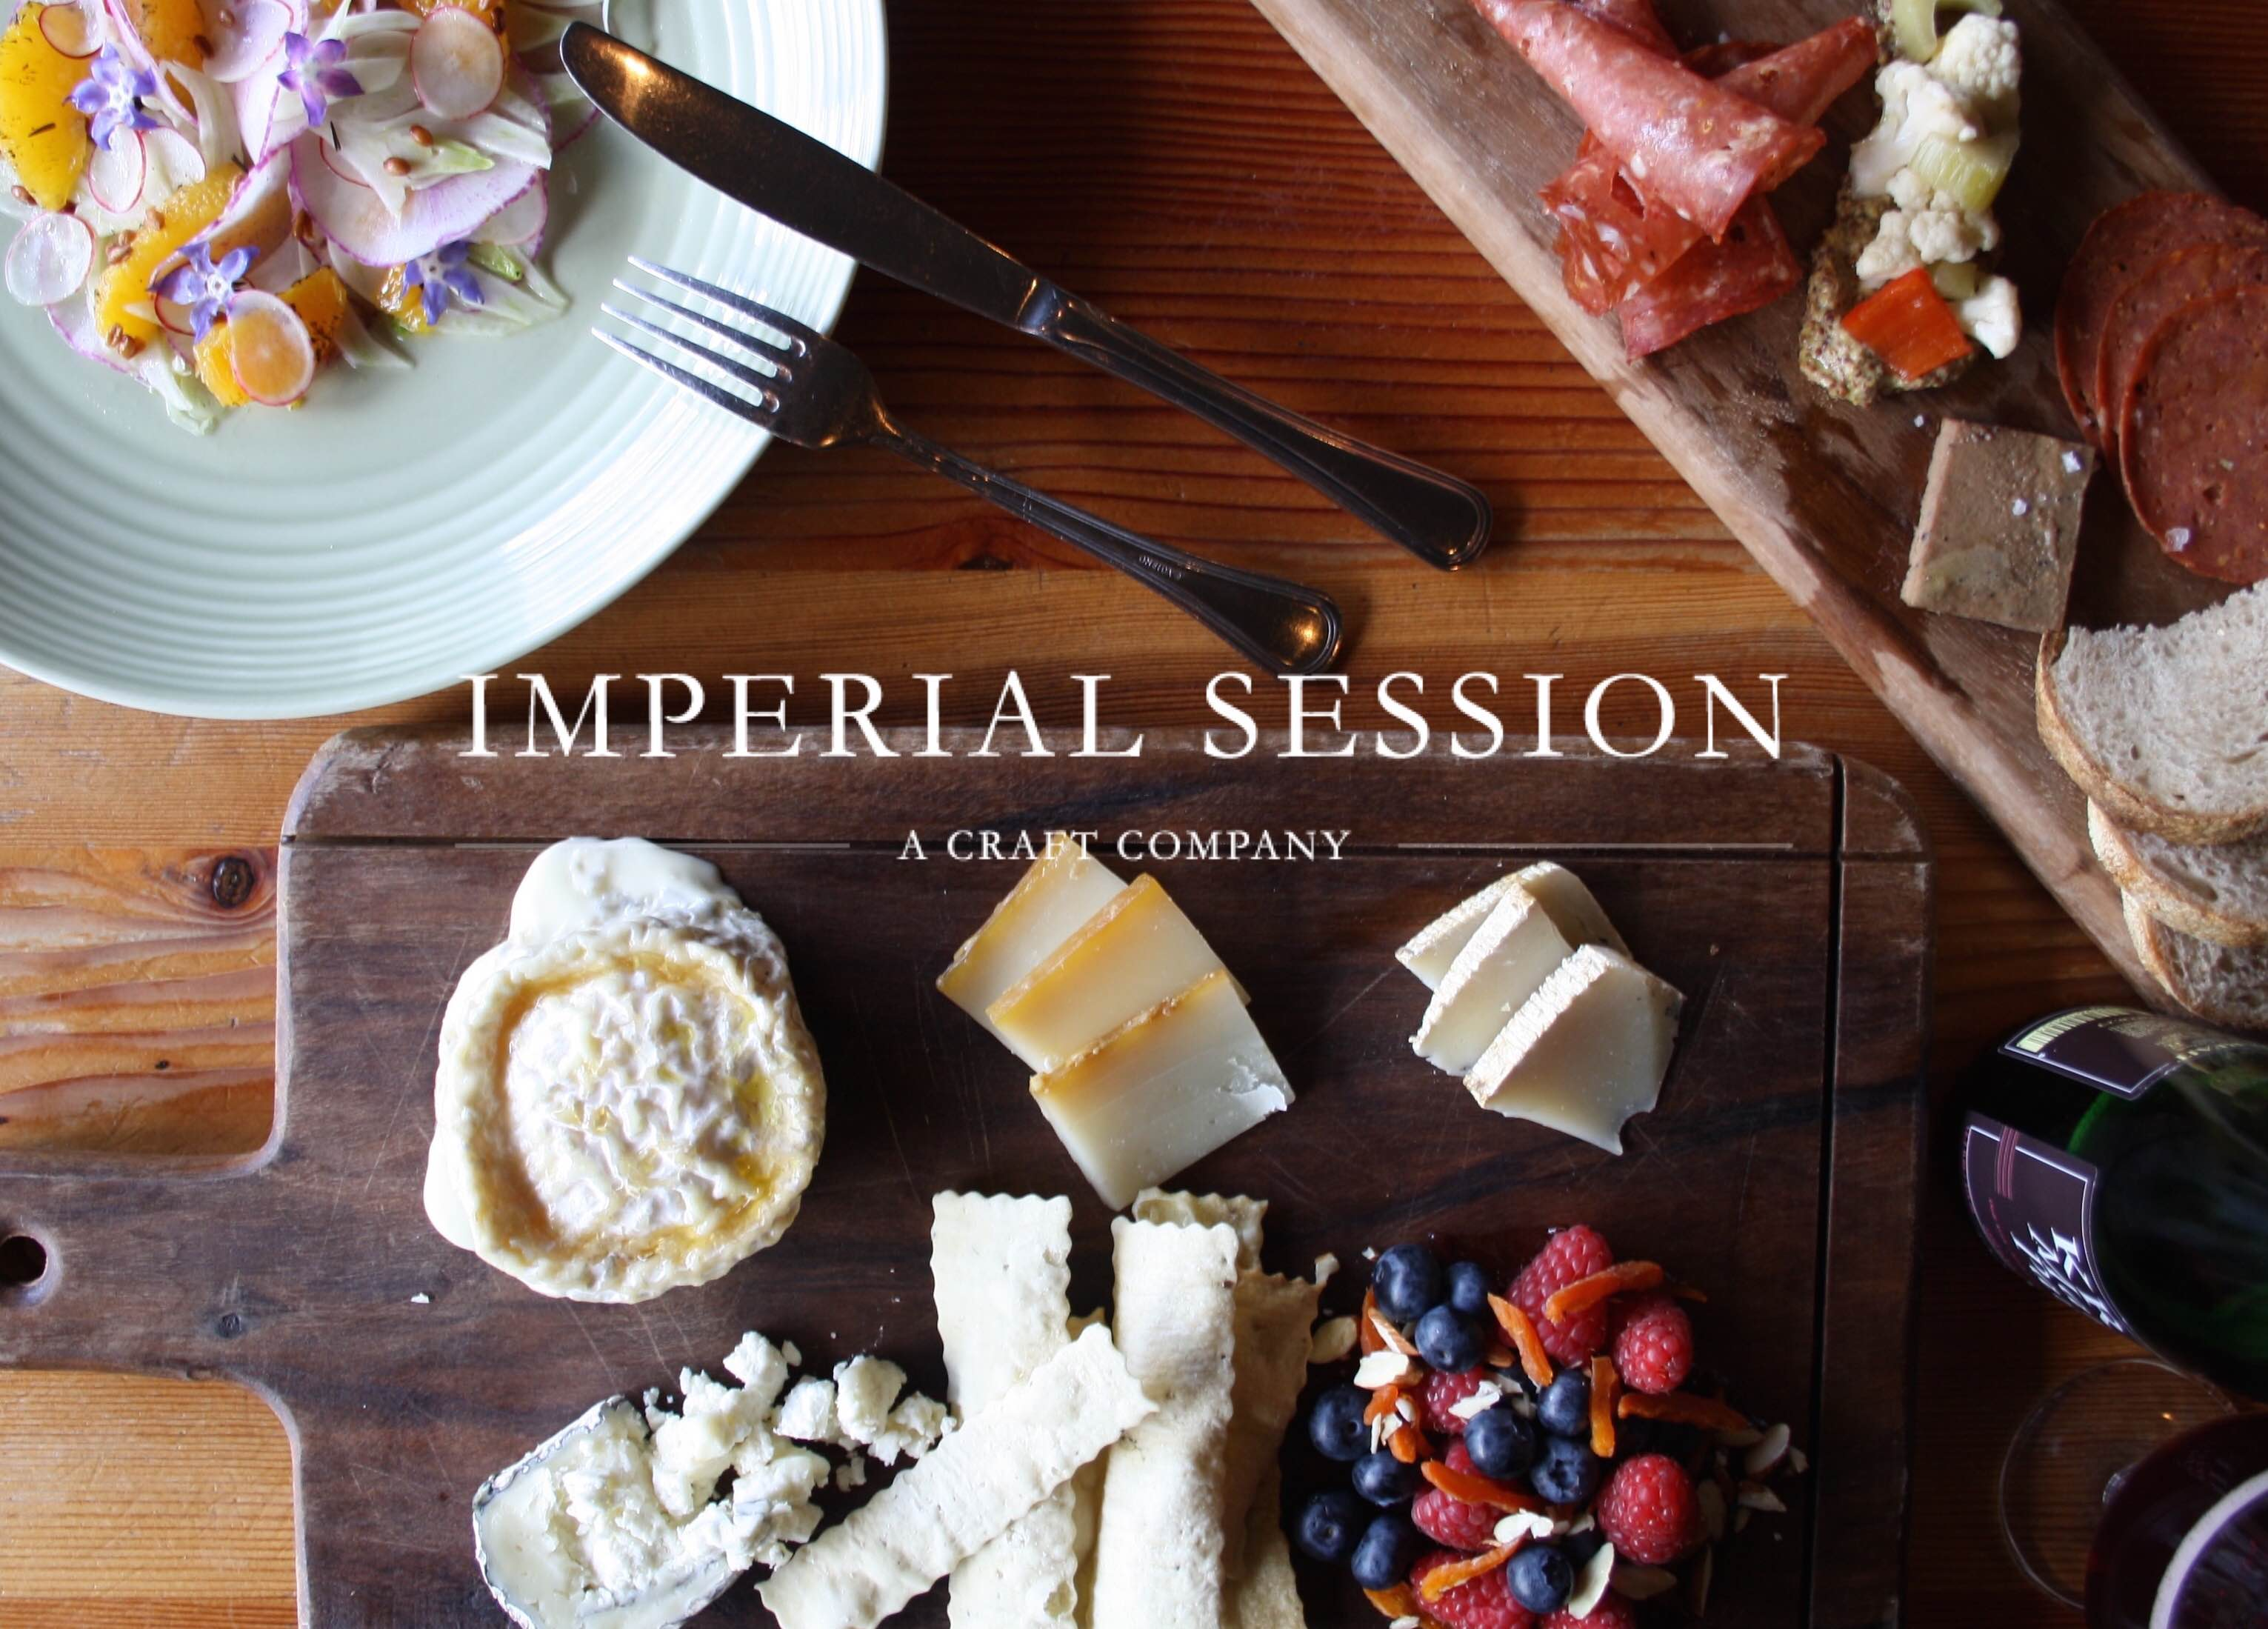 Imperial Session - A Craft Company